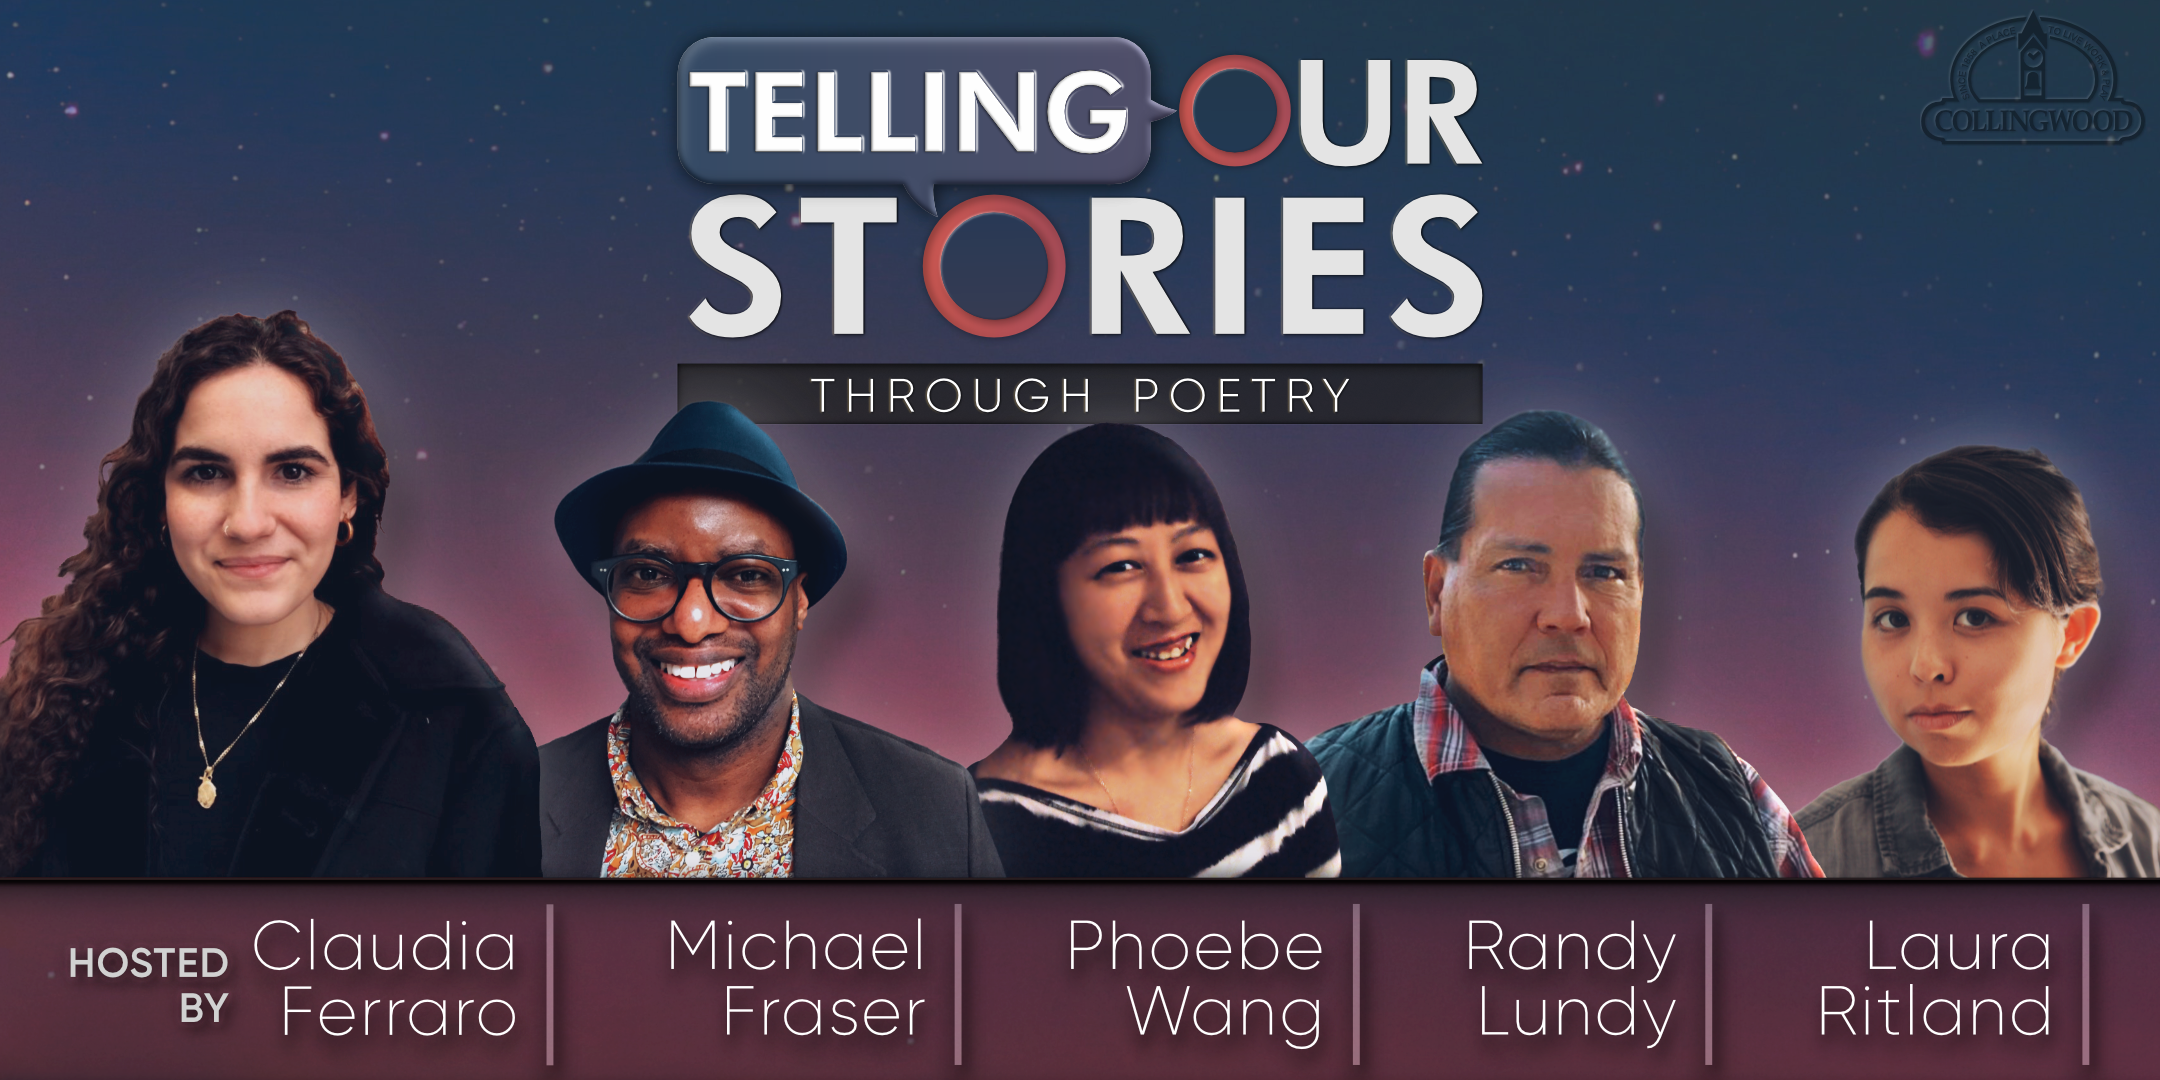 Telling Our Stories Through Poetry authors